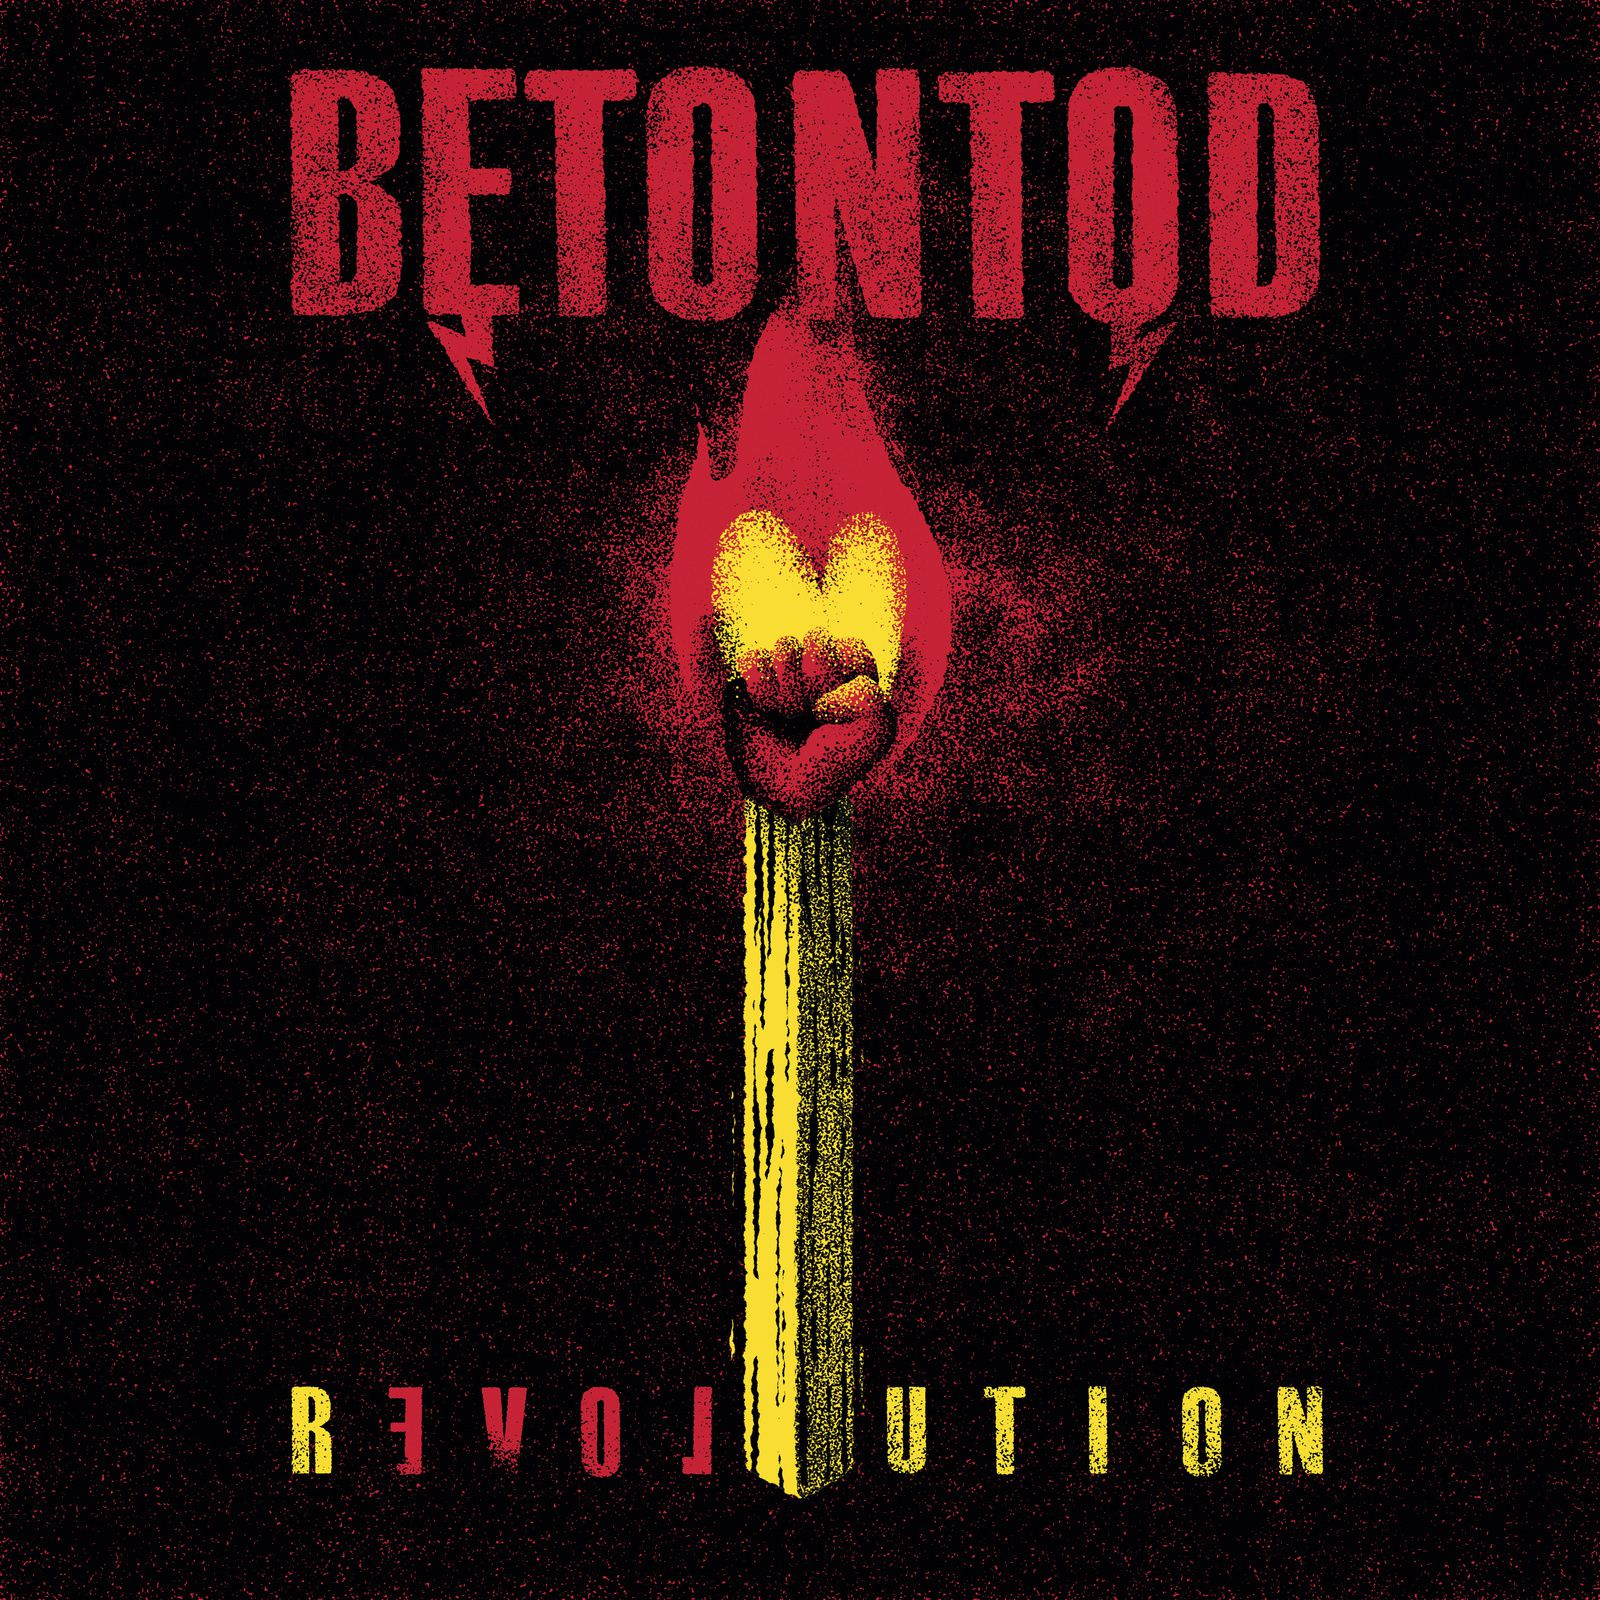 CD review BETONTOD&quot&#x3B; Revolution&quot&#x3B;